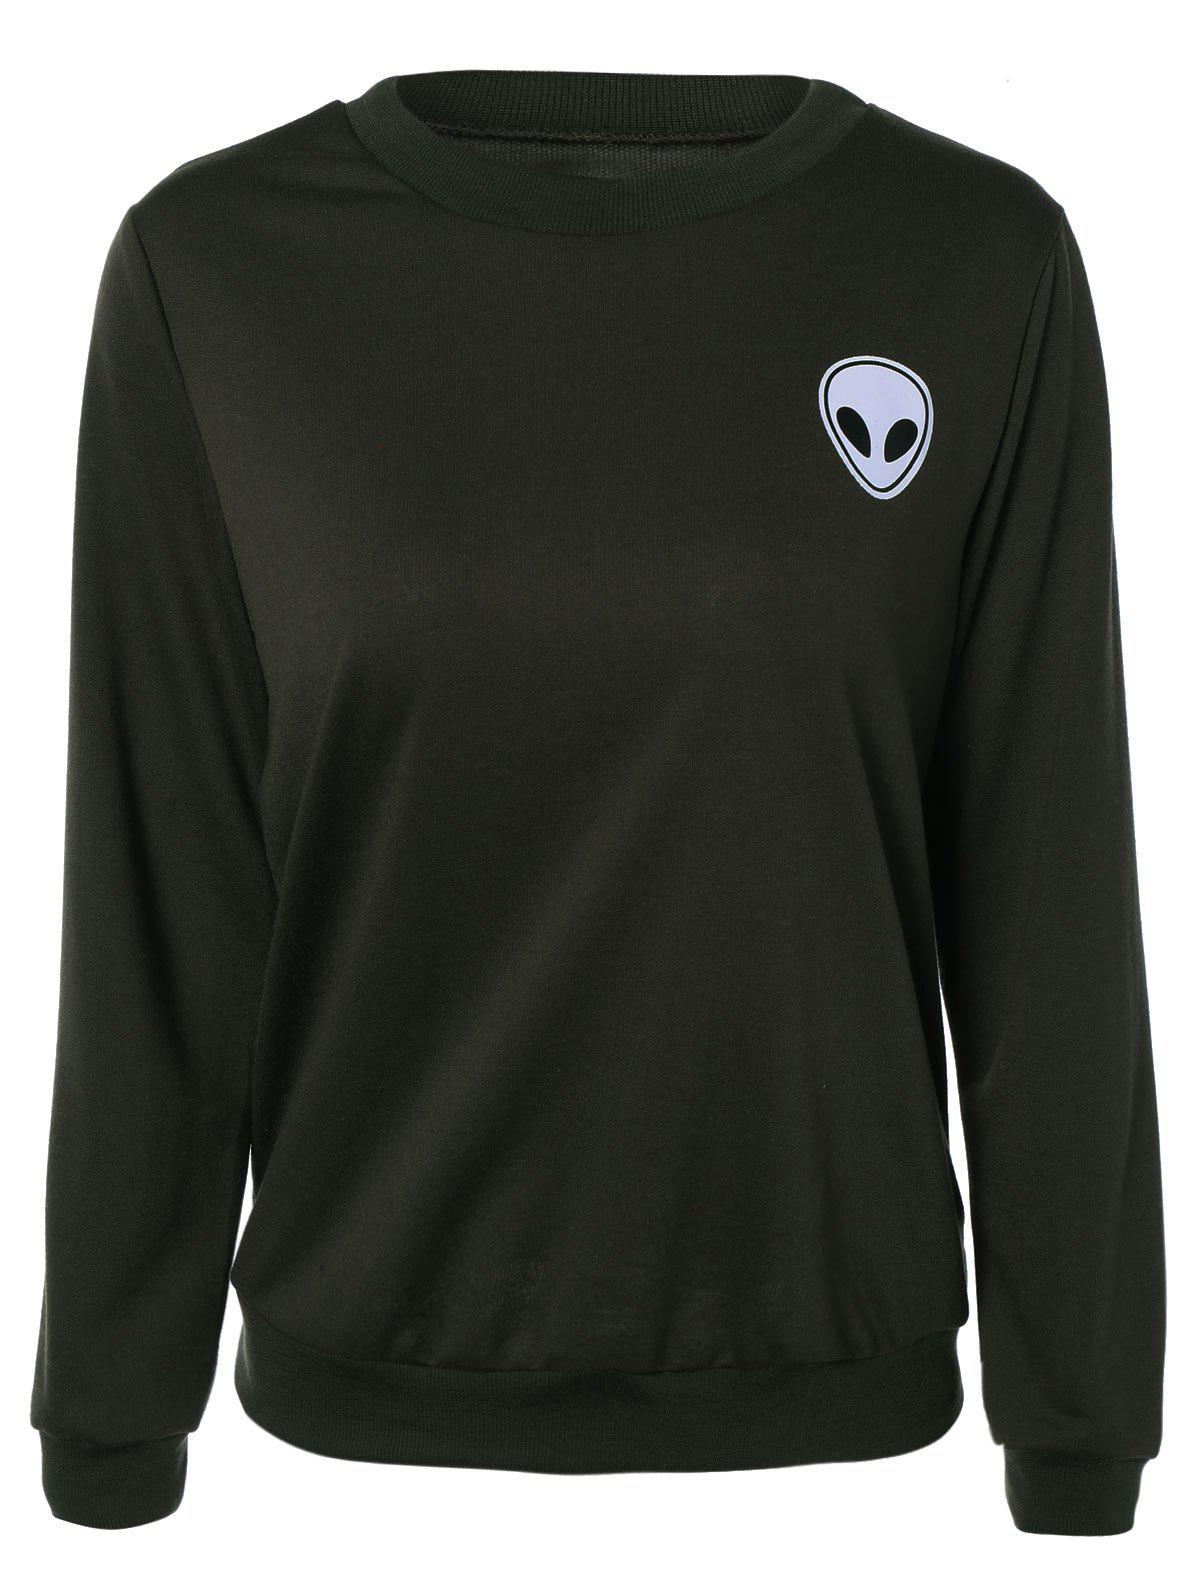 Store Skull Print Long Sleeve Sweatshirt